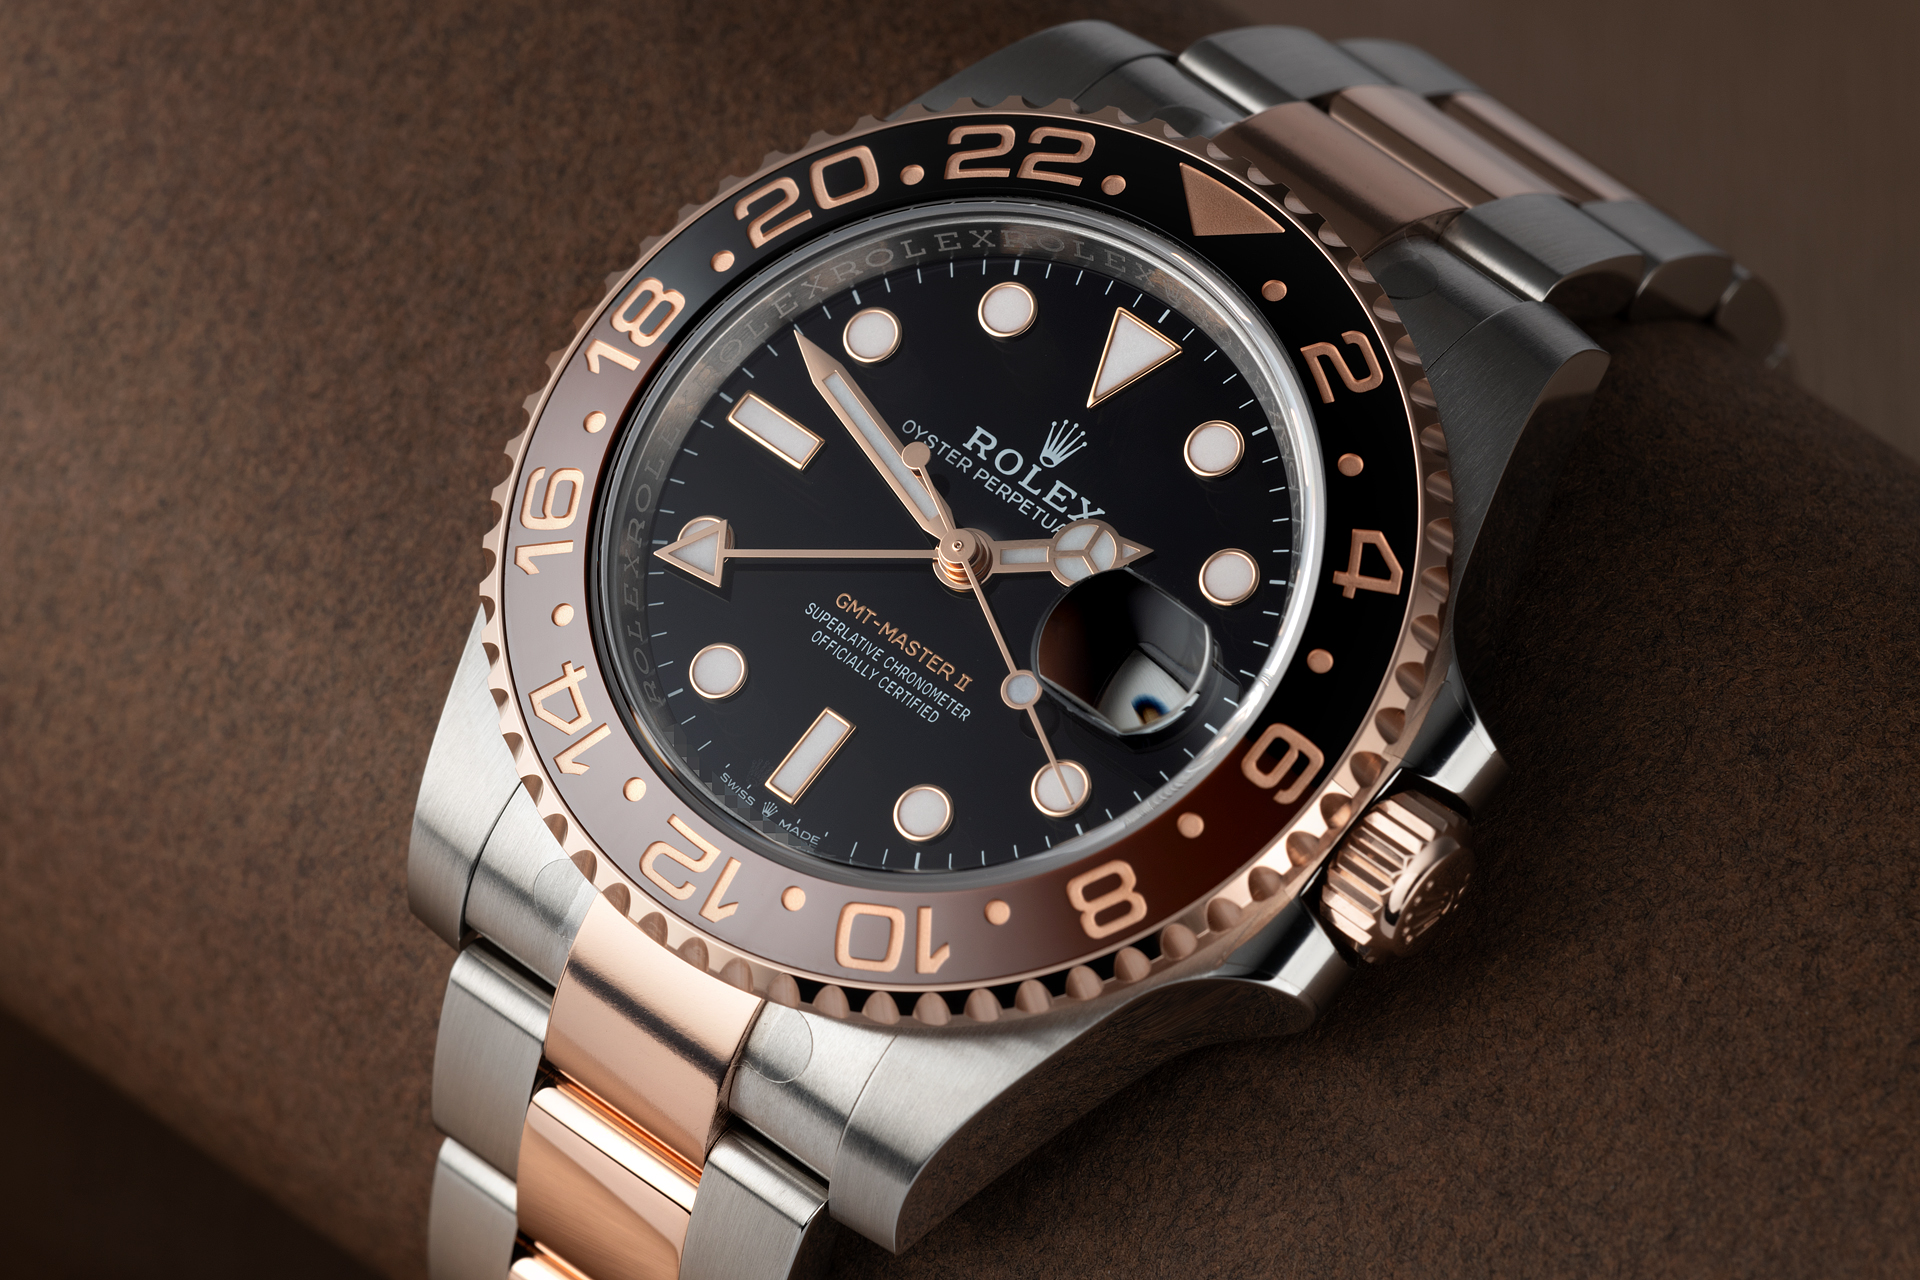 Rolex GMT-Master II Watches | ref 126711CHNR | 'Brand New Root Beer' | The Watch Club